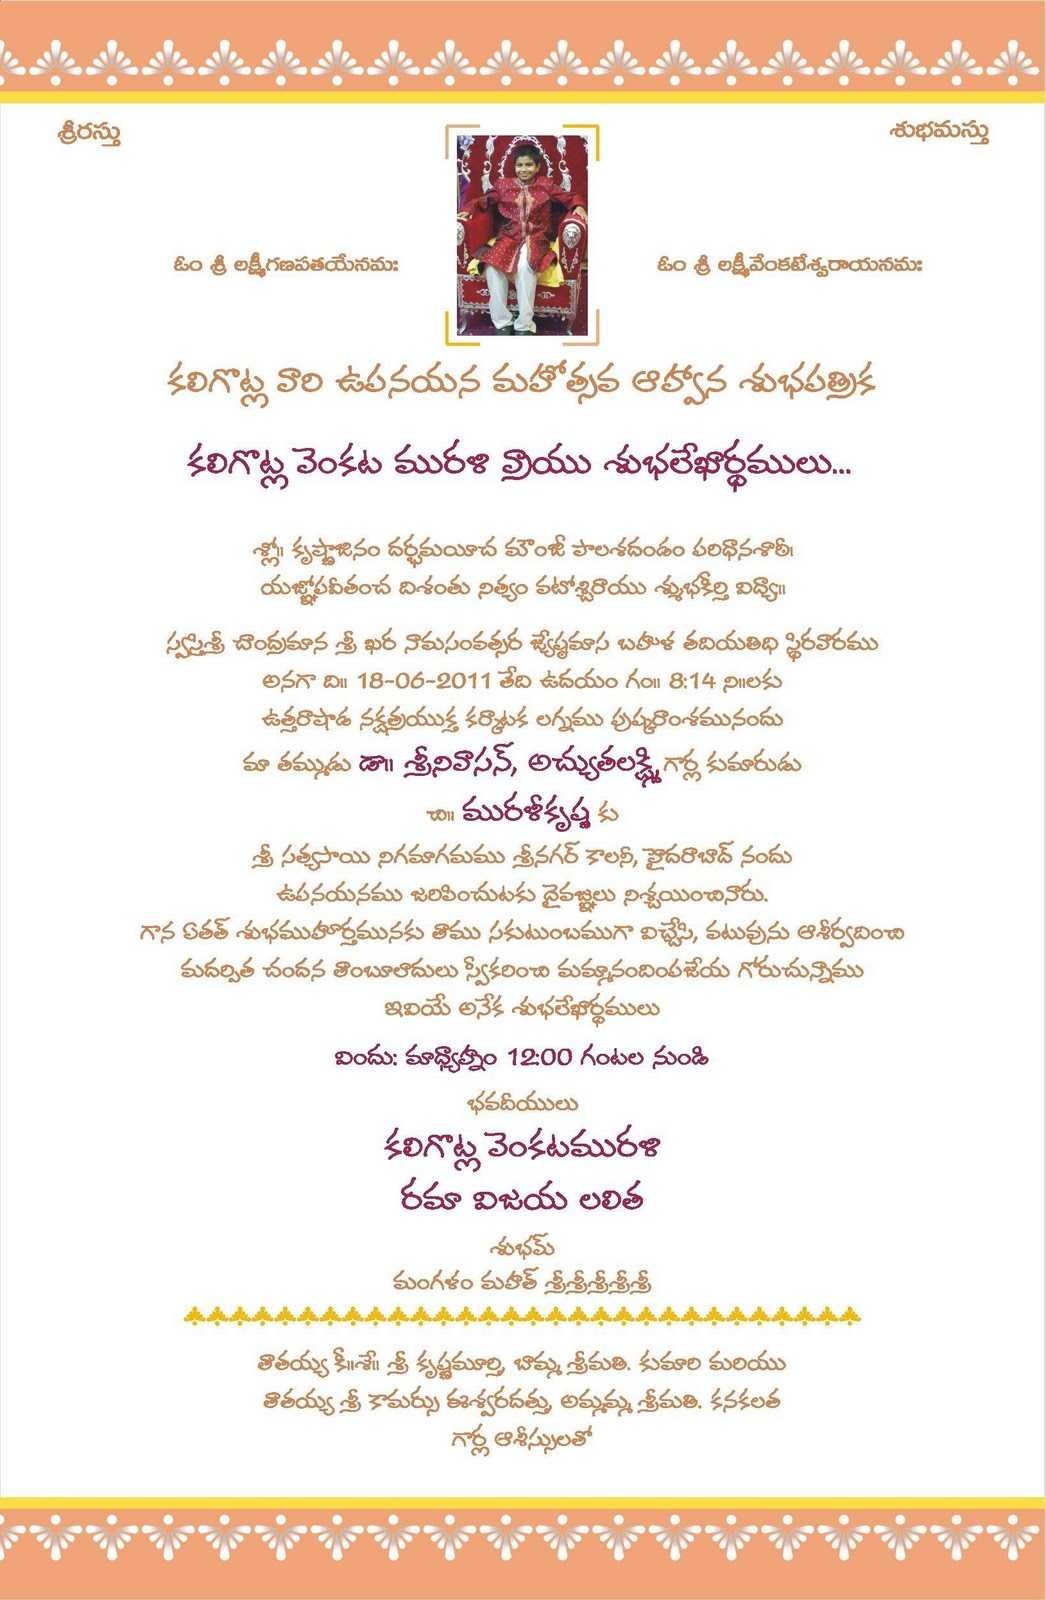 INVITATION FORMAT FOR UPANAYANAM